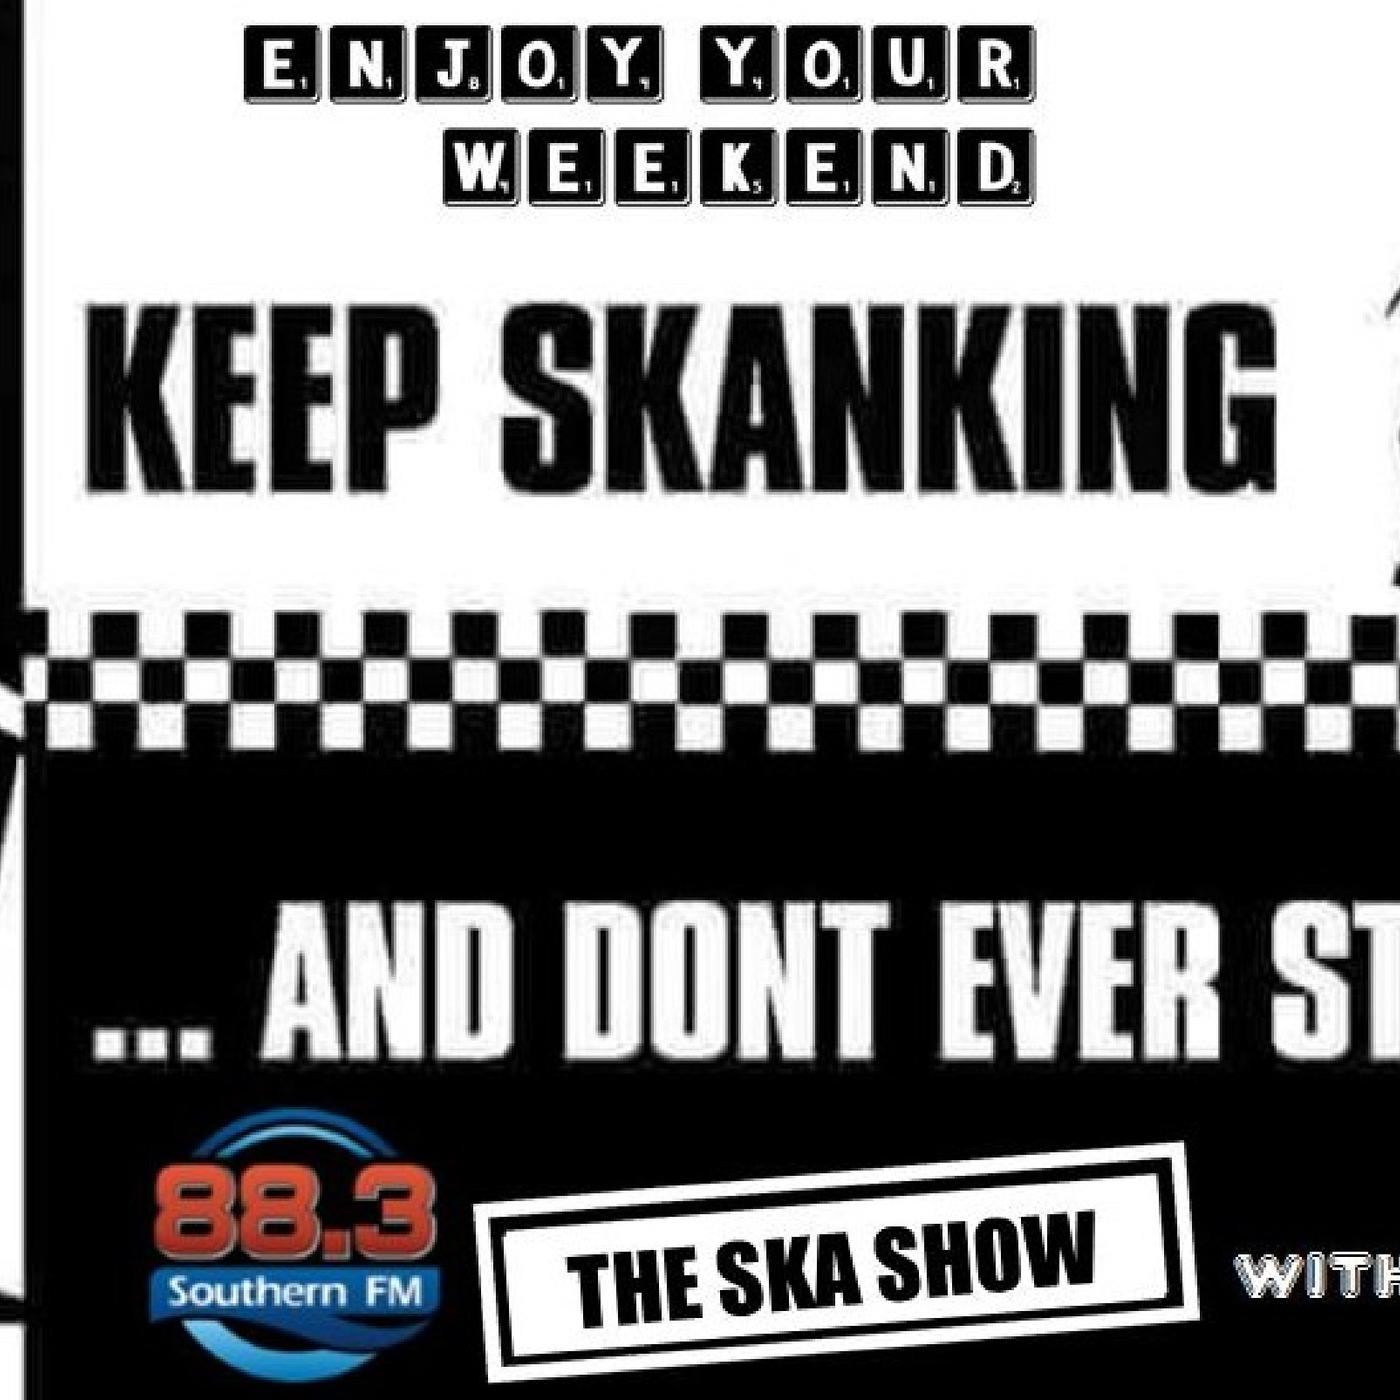 The Ska Show with Beefy, Mar 22 2018